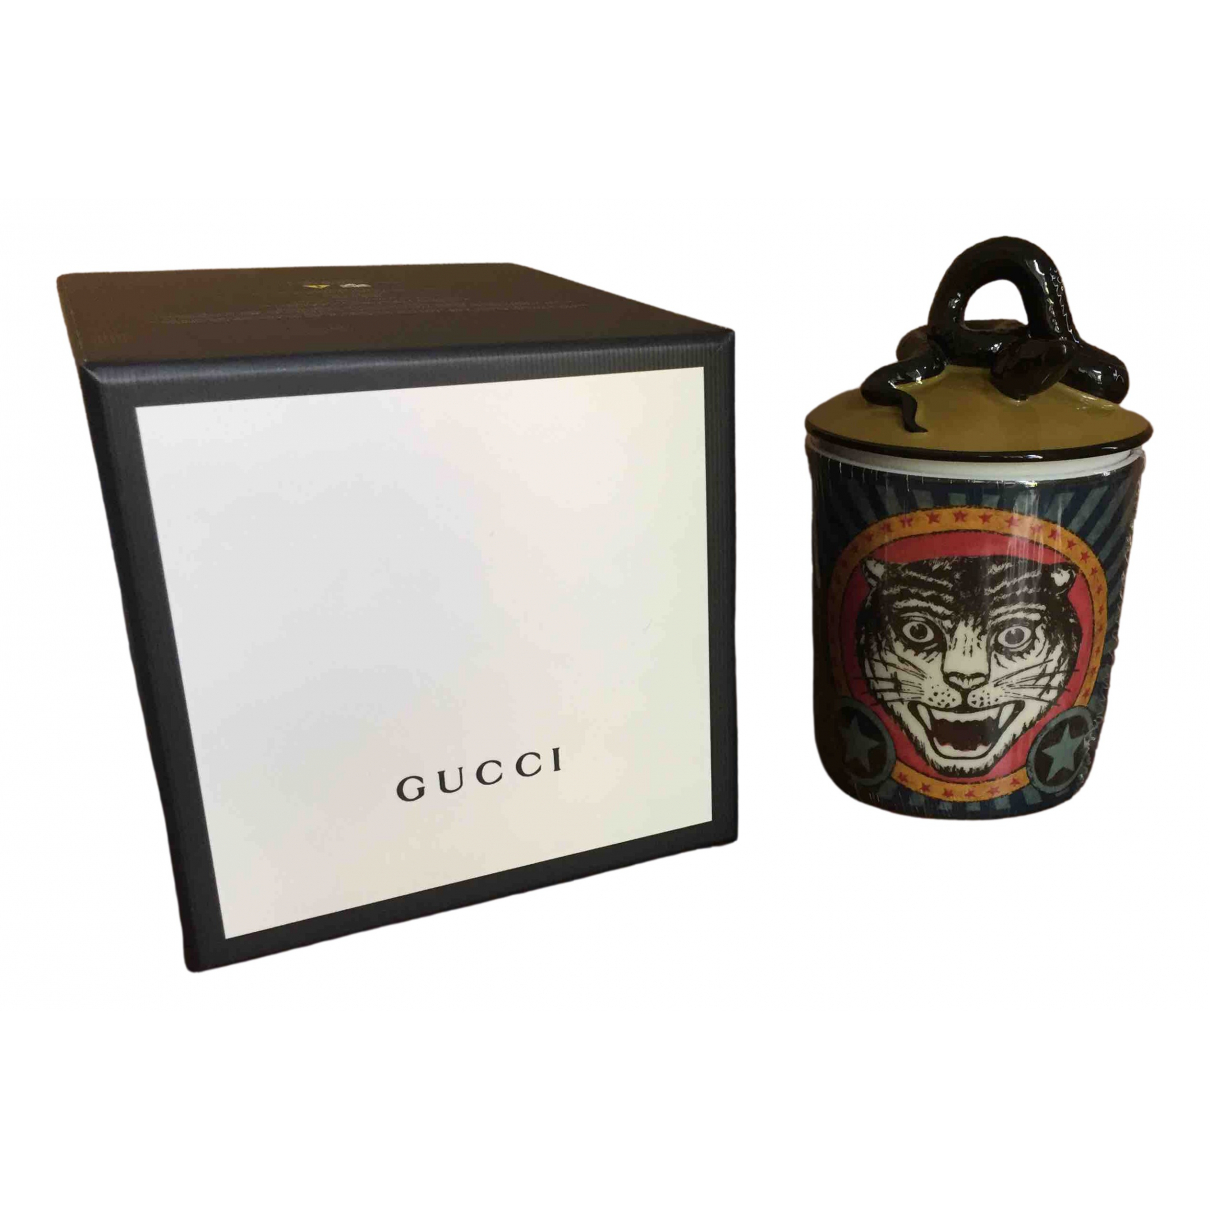 Gucci Urtica Ferox Multicolour Porcelain Home decor for Life & Living \N